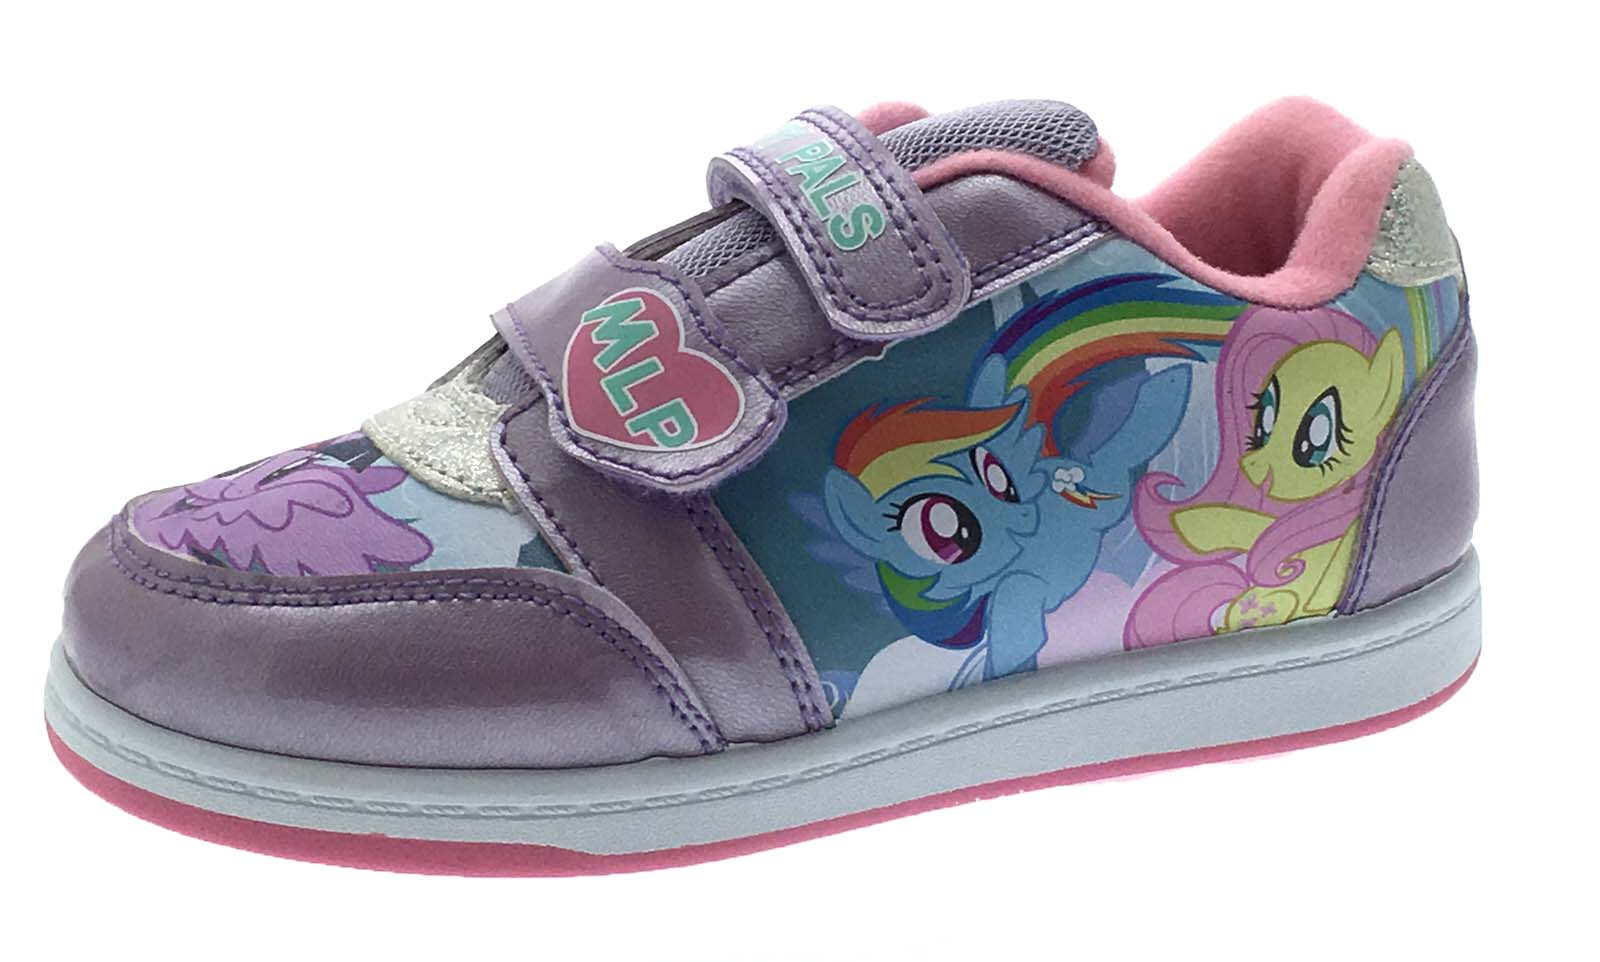 Enjoy free shipping and easy returns every day at Kohl's. Find great deals on My Little Pony at Kohl's today!